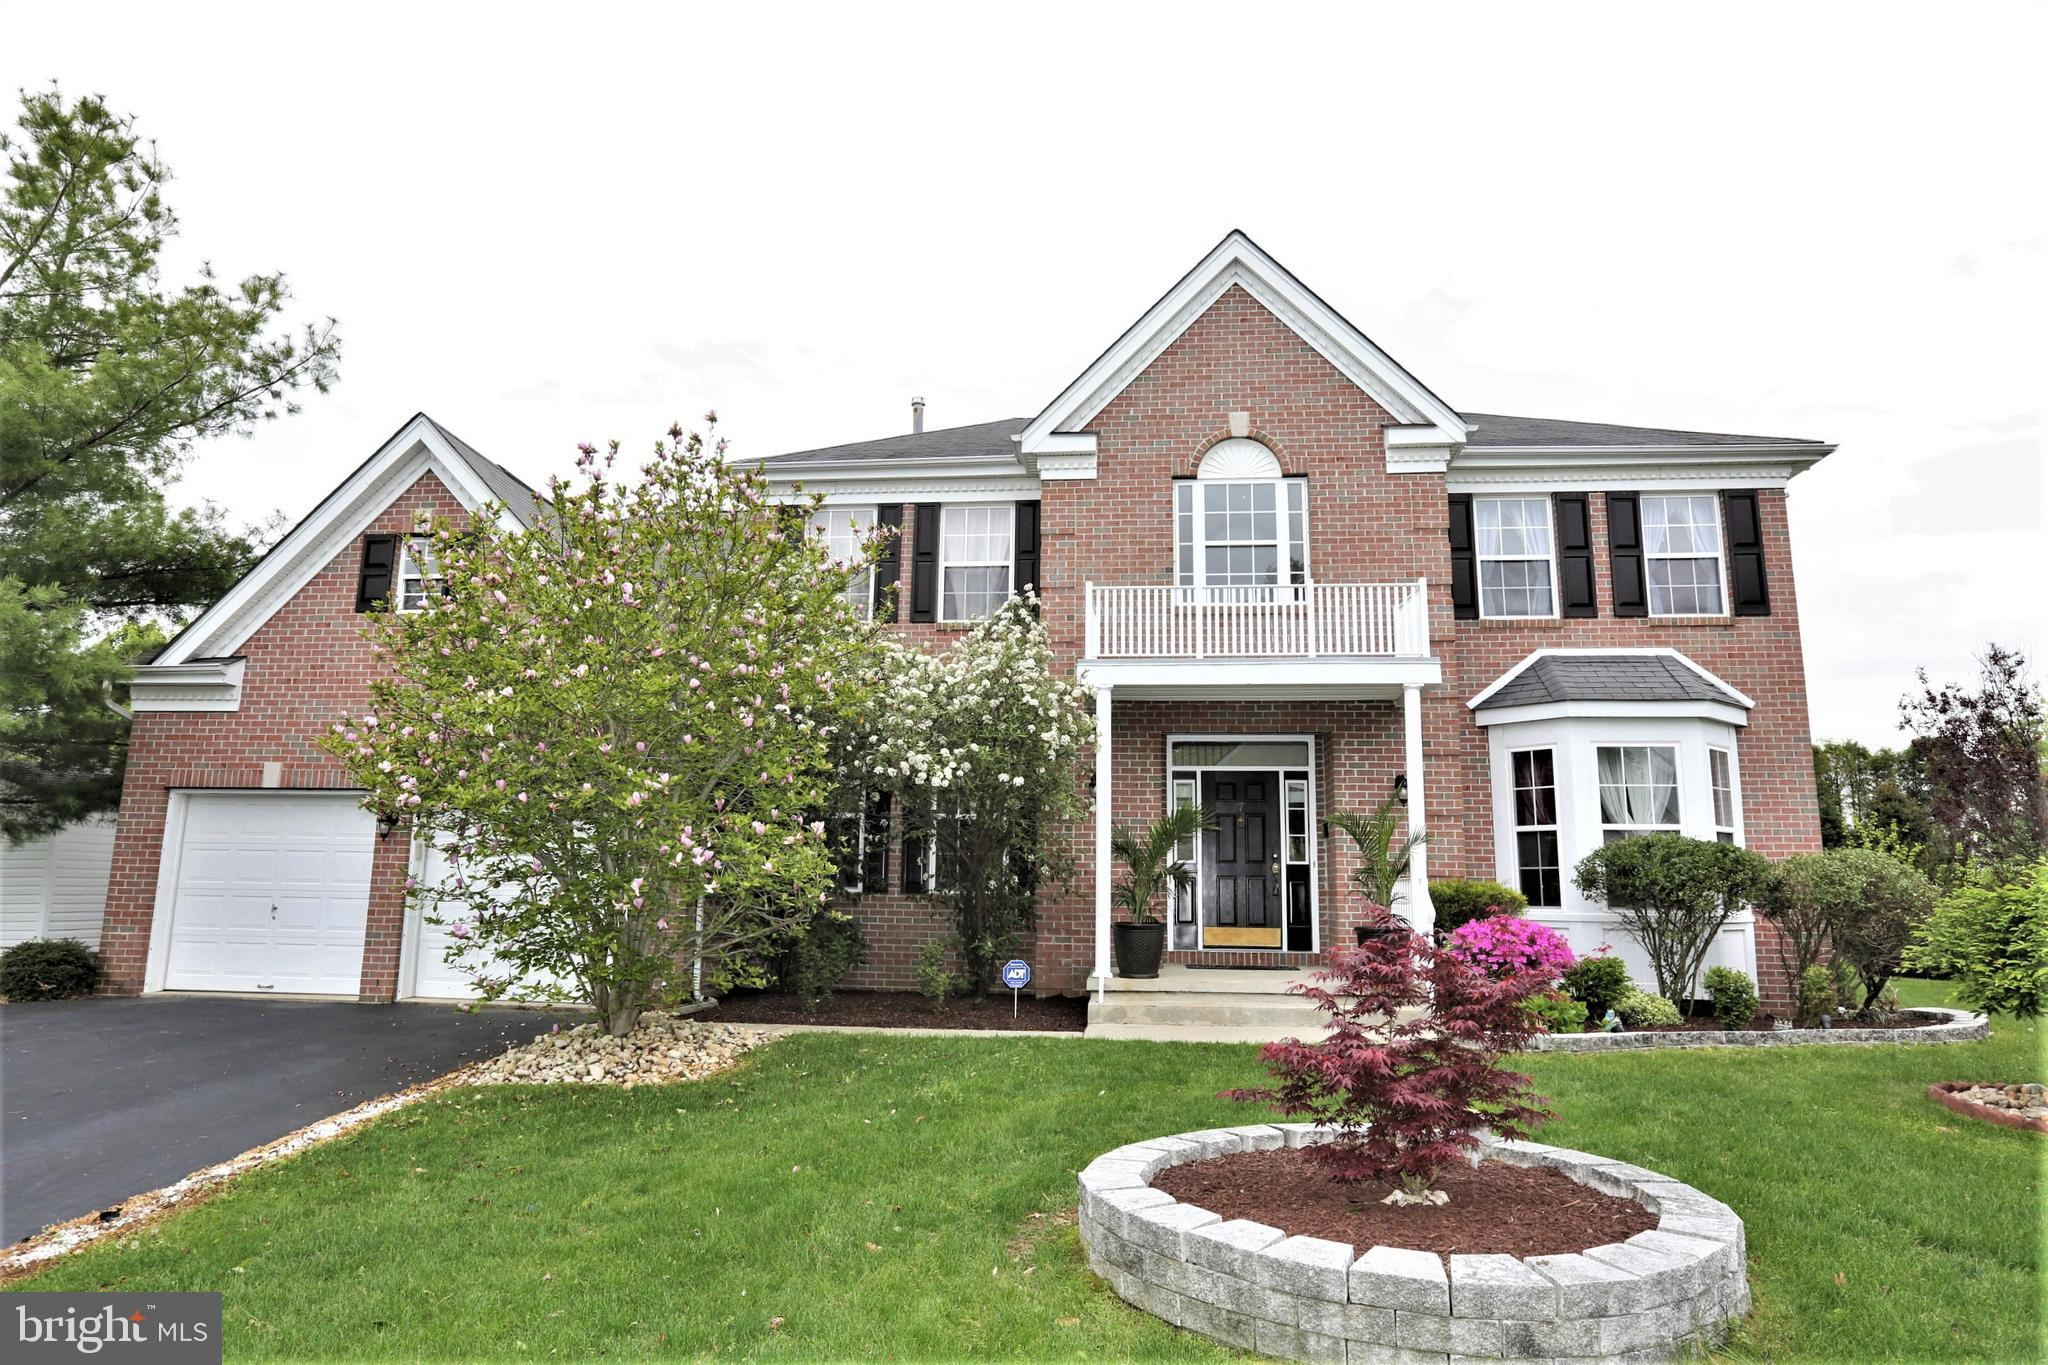 7 CANNONBALL COURT, ALLENTOWN, NJ 08501